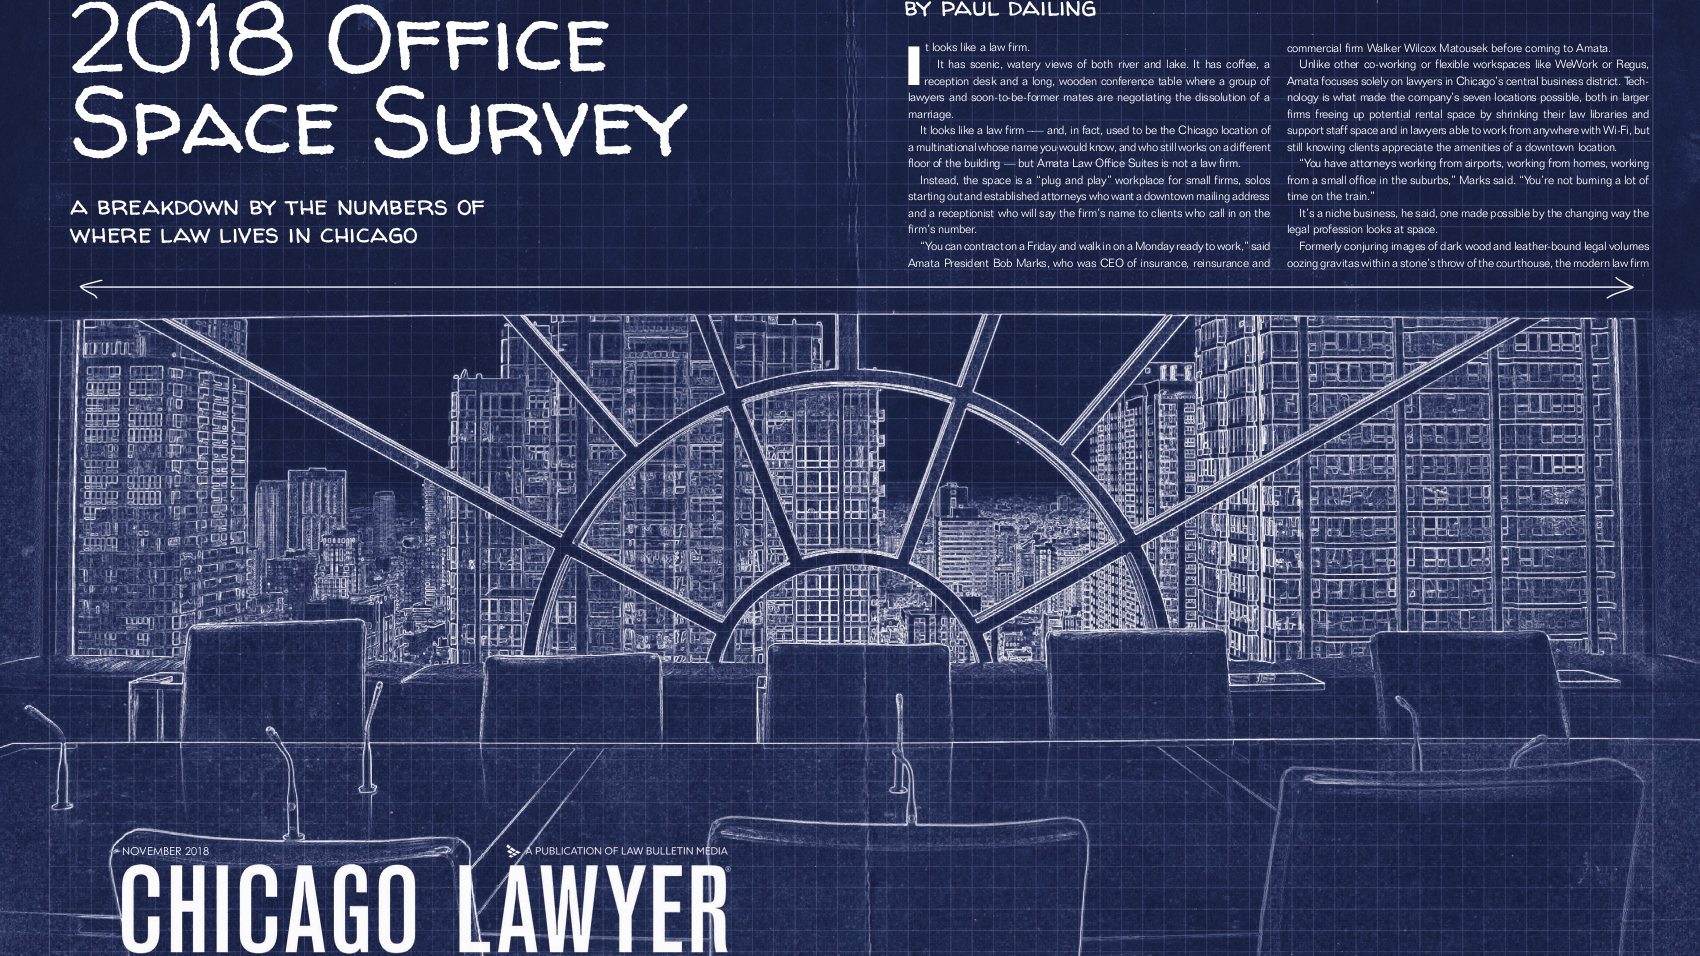 Amata President Interviewed – Chicago Lawyer's 2018 Office Space Survey